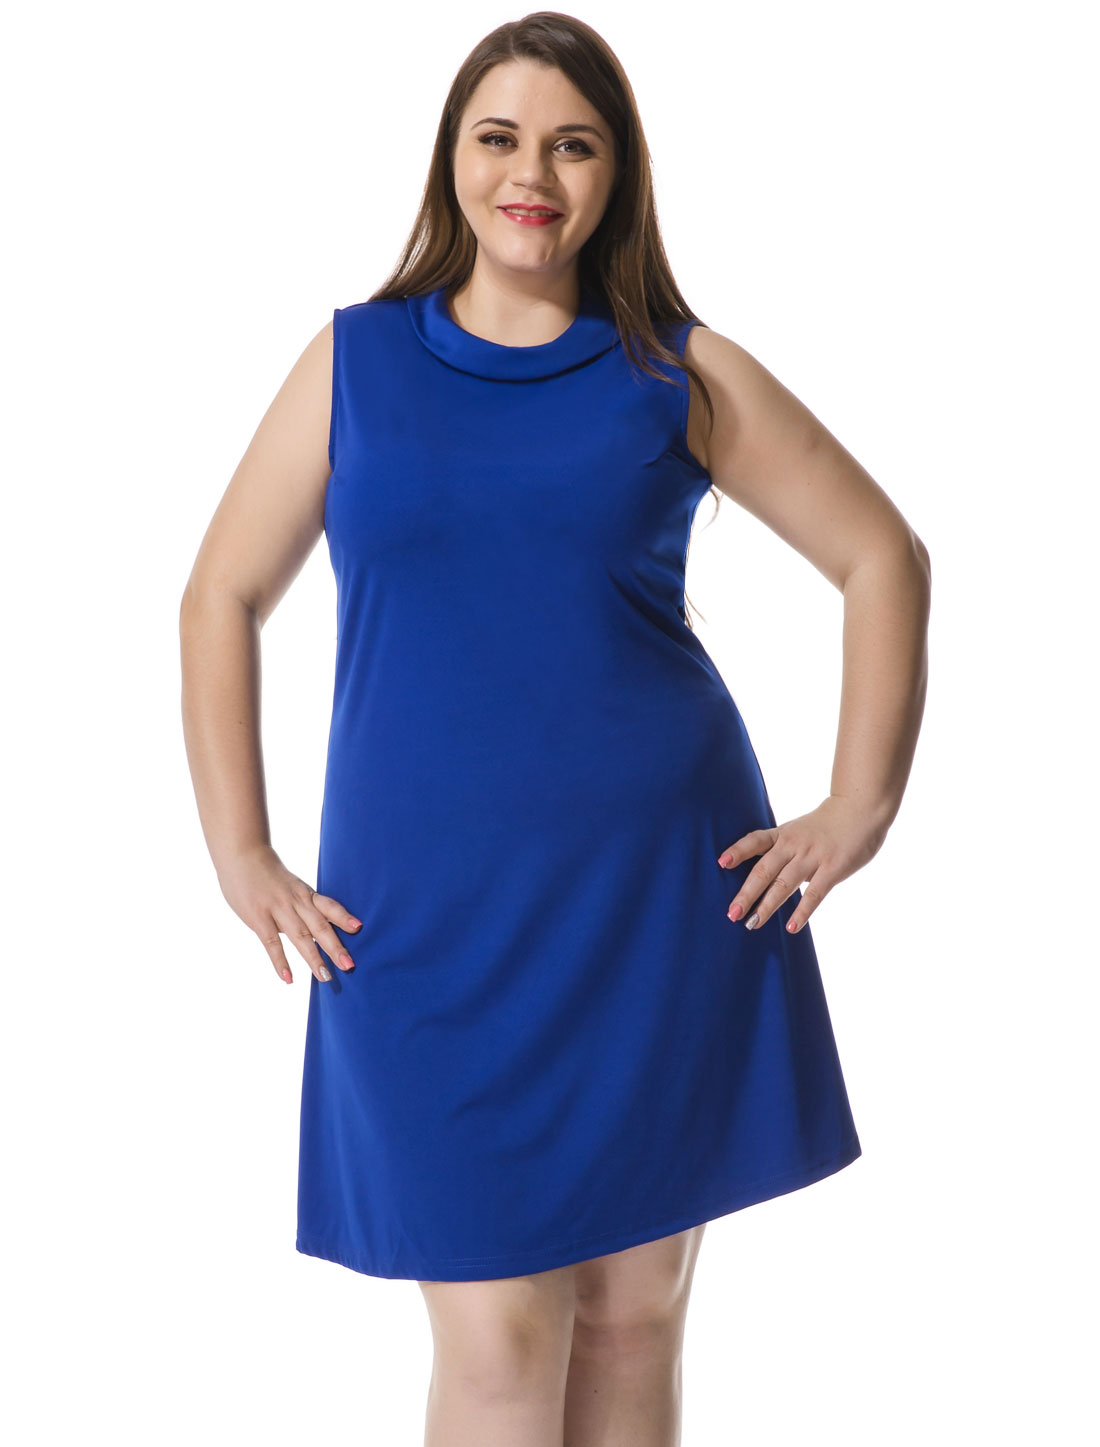 Women Plus Size Turn Down Collar Sleeveless Dress Blue 3X